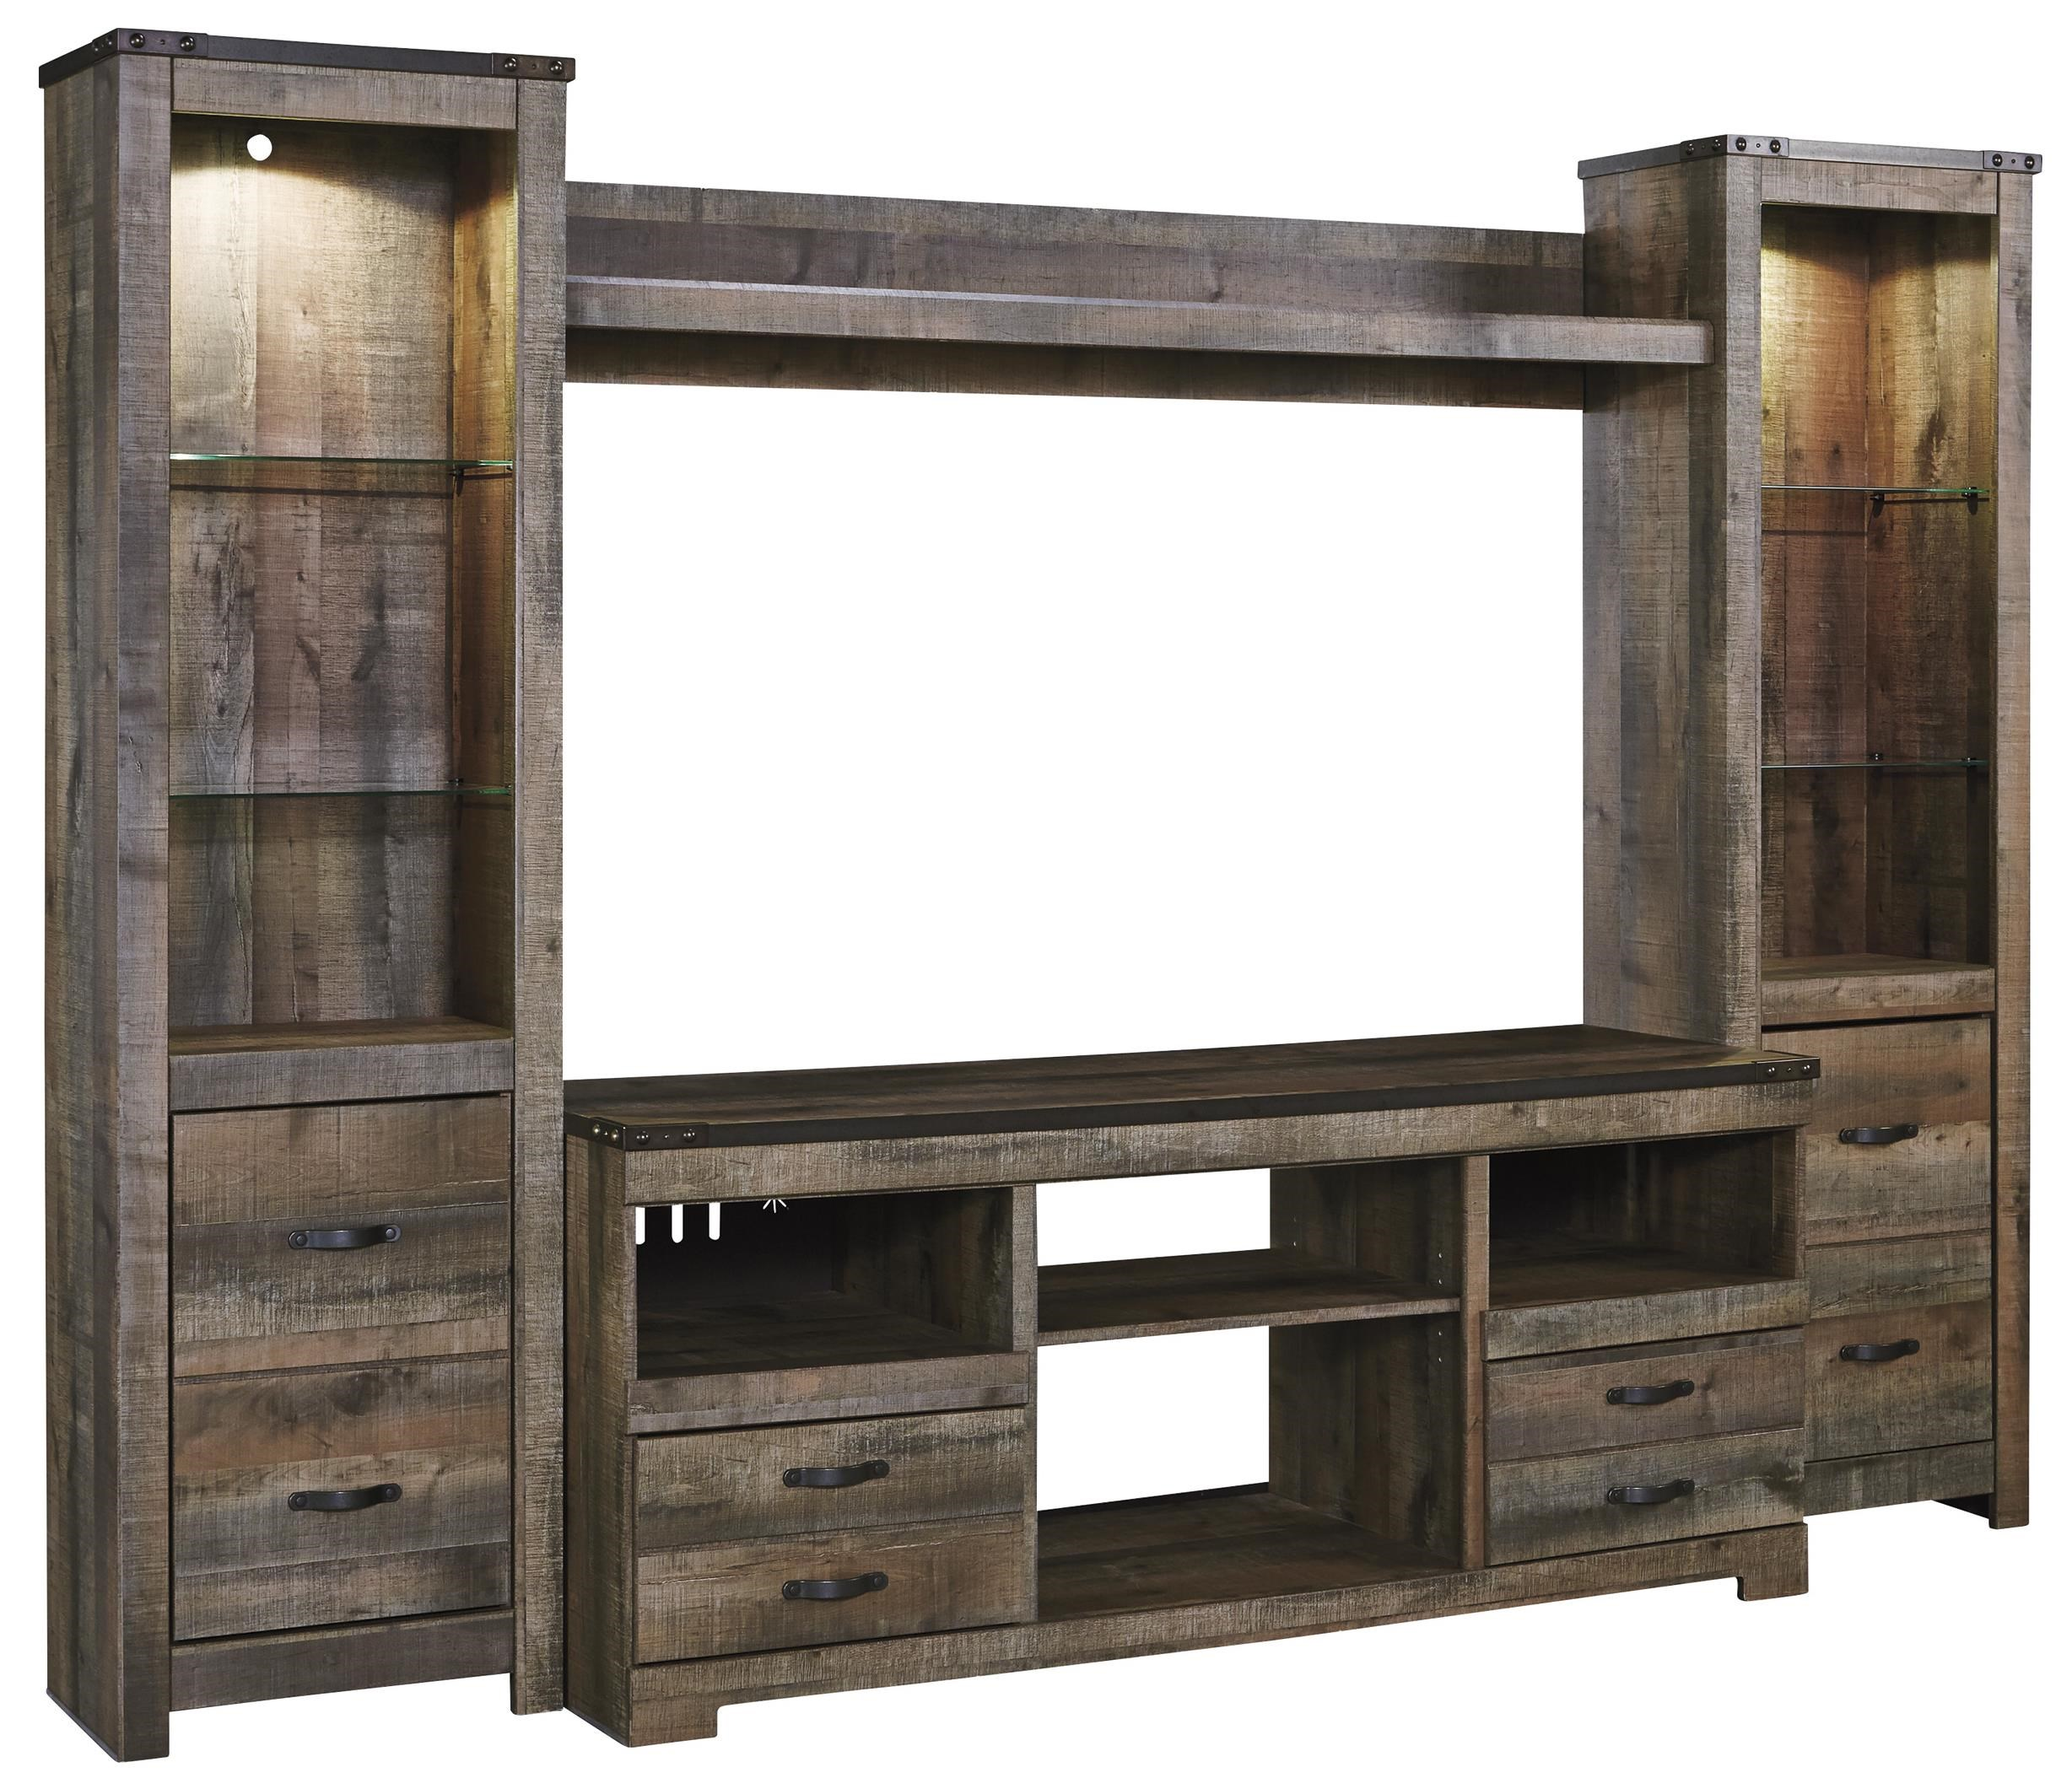 Signature Design By Ashley Furniture Trinell Rustic Large TV Stand